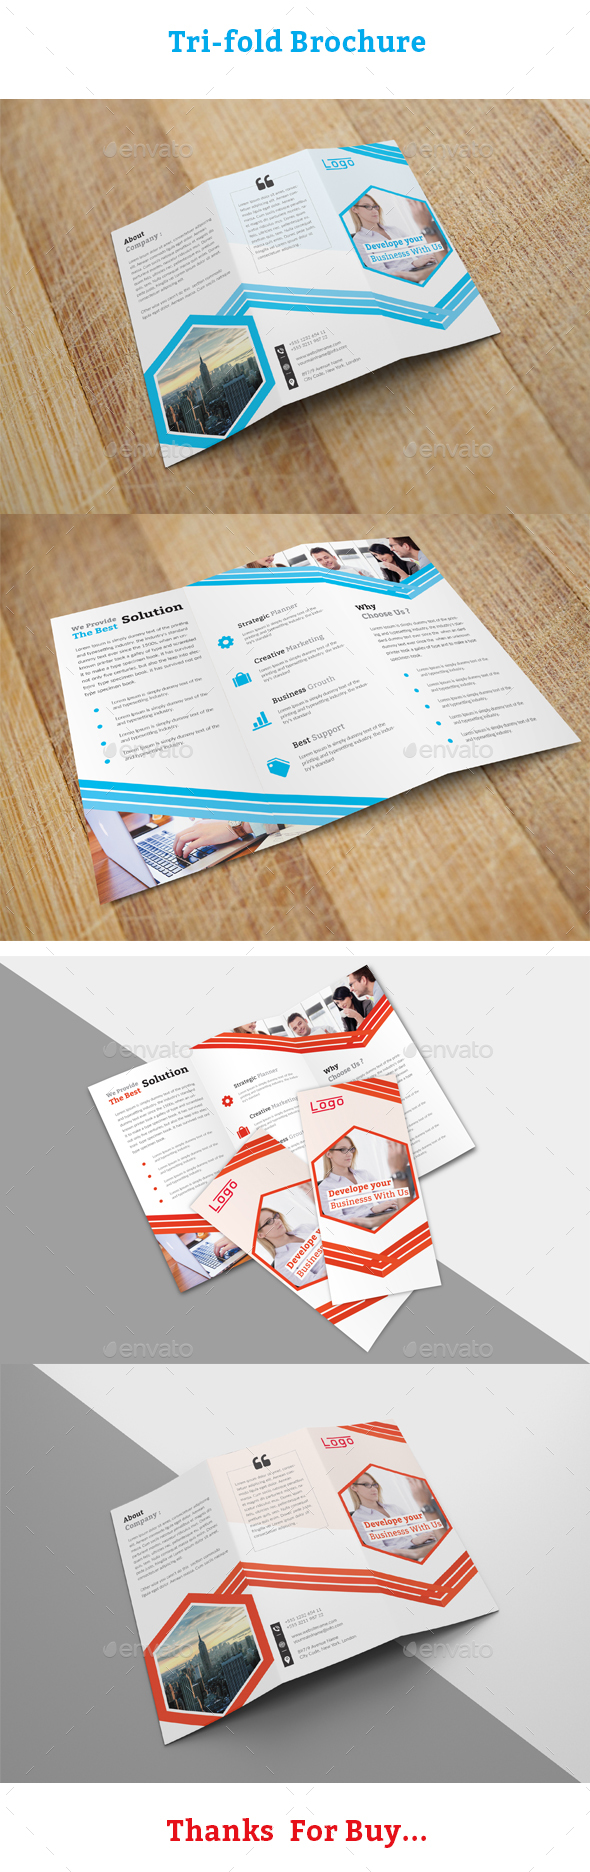 TriFold Brochure Template - Corporate Business Cards